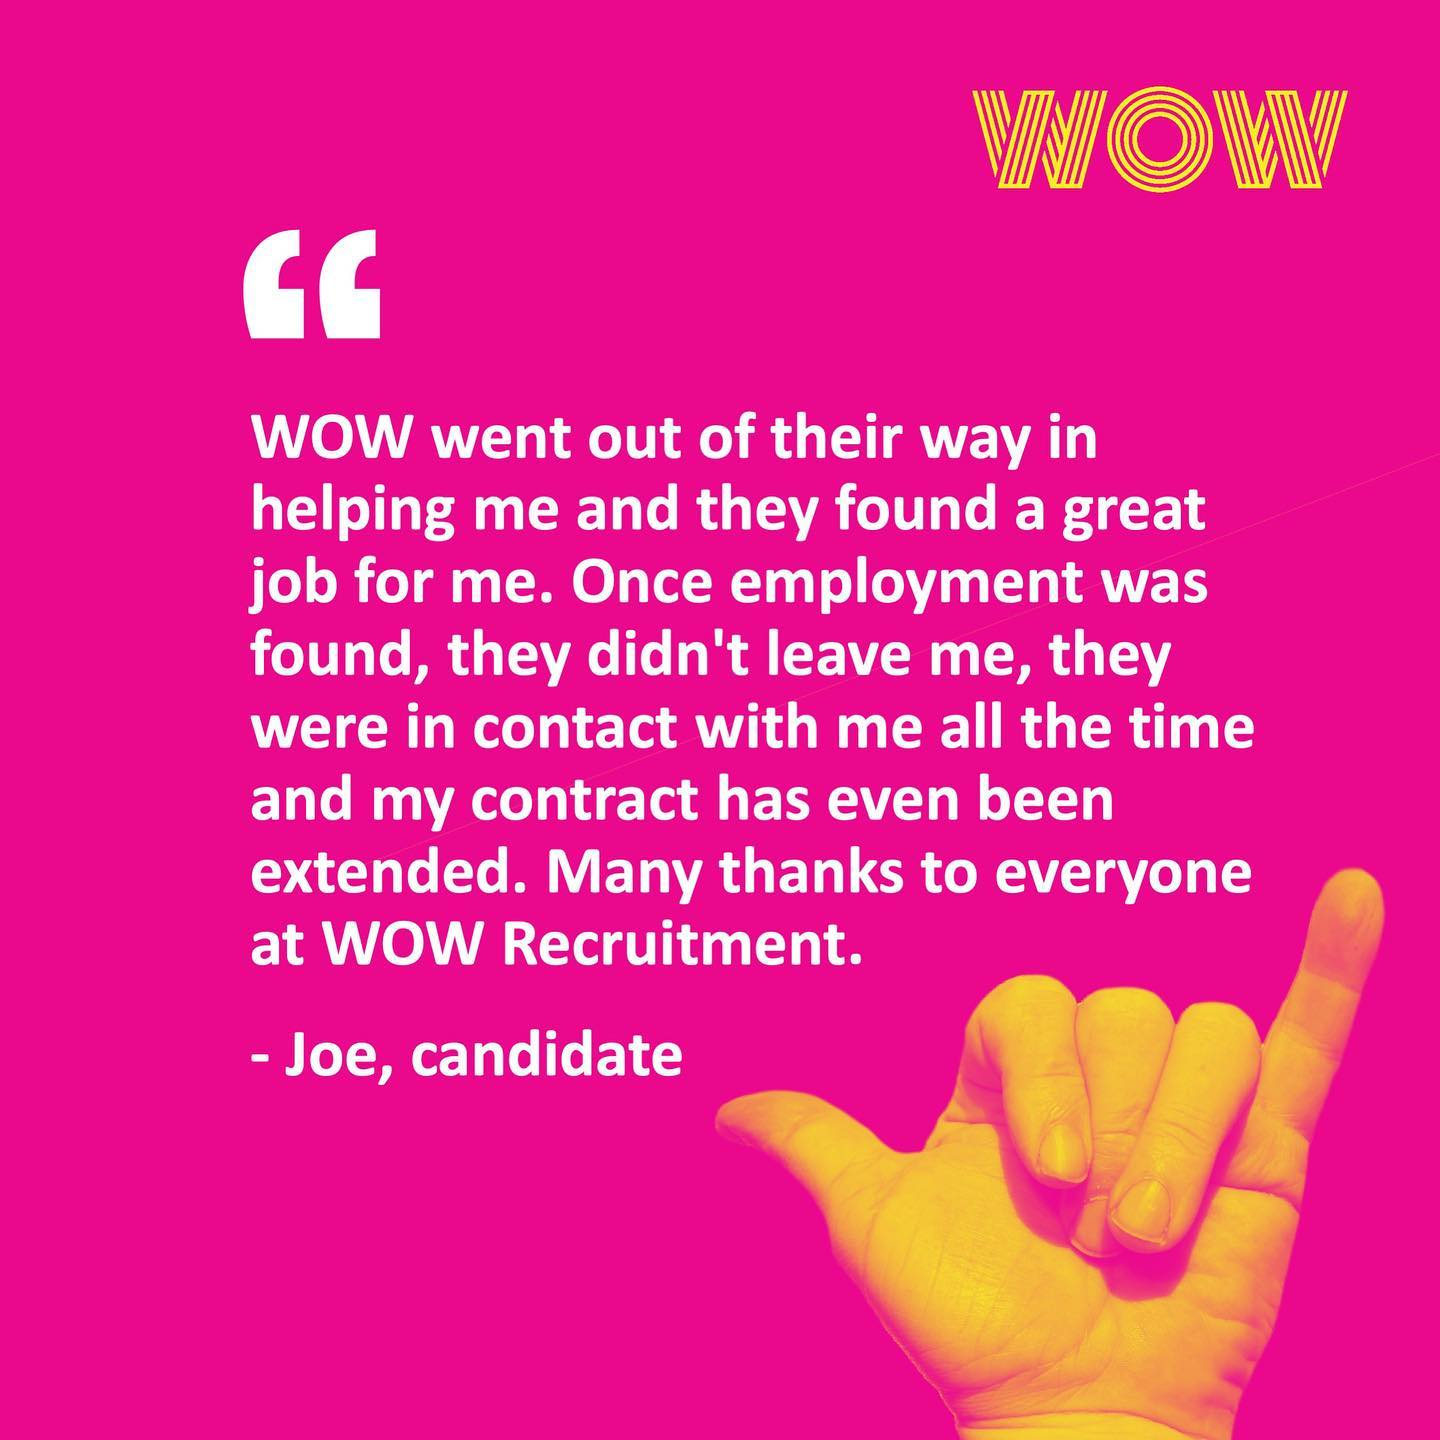 Here's what our candidate has to say about working with us